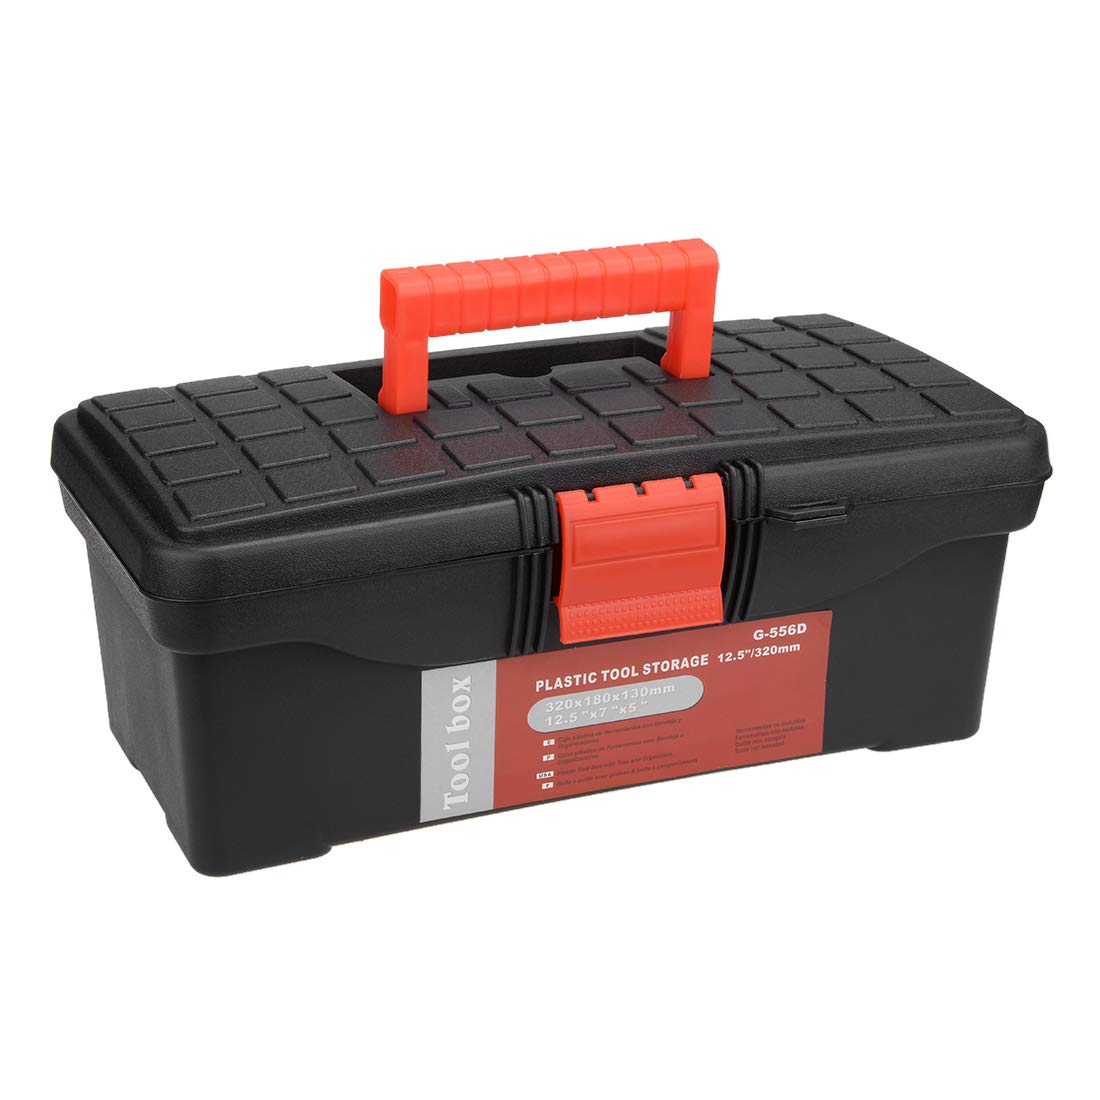 uxcell 14-inch Tool Box Plastic Tool Box with Tray and Organizers Includes Removable Three Small Parts Boxes